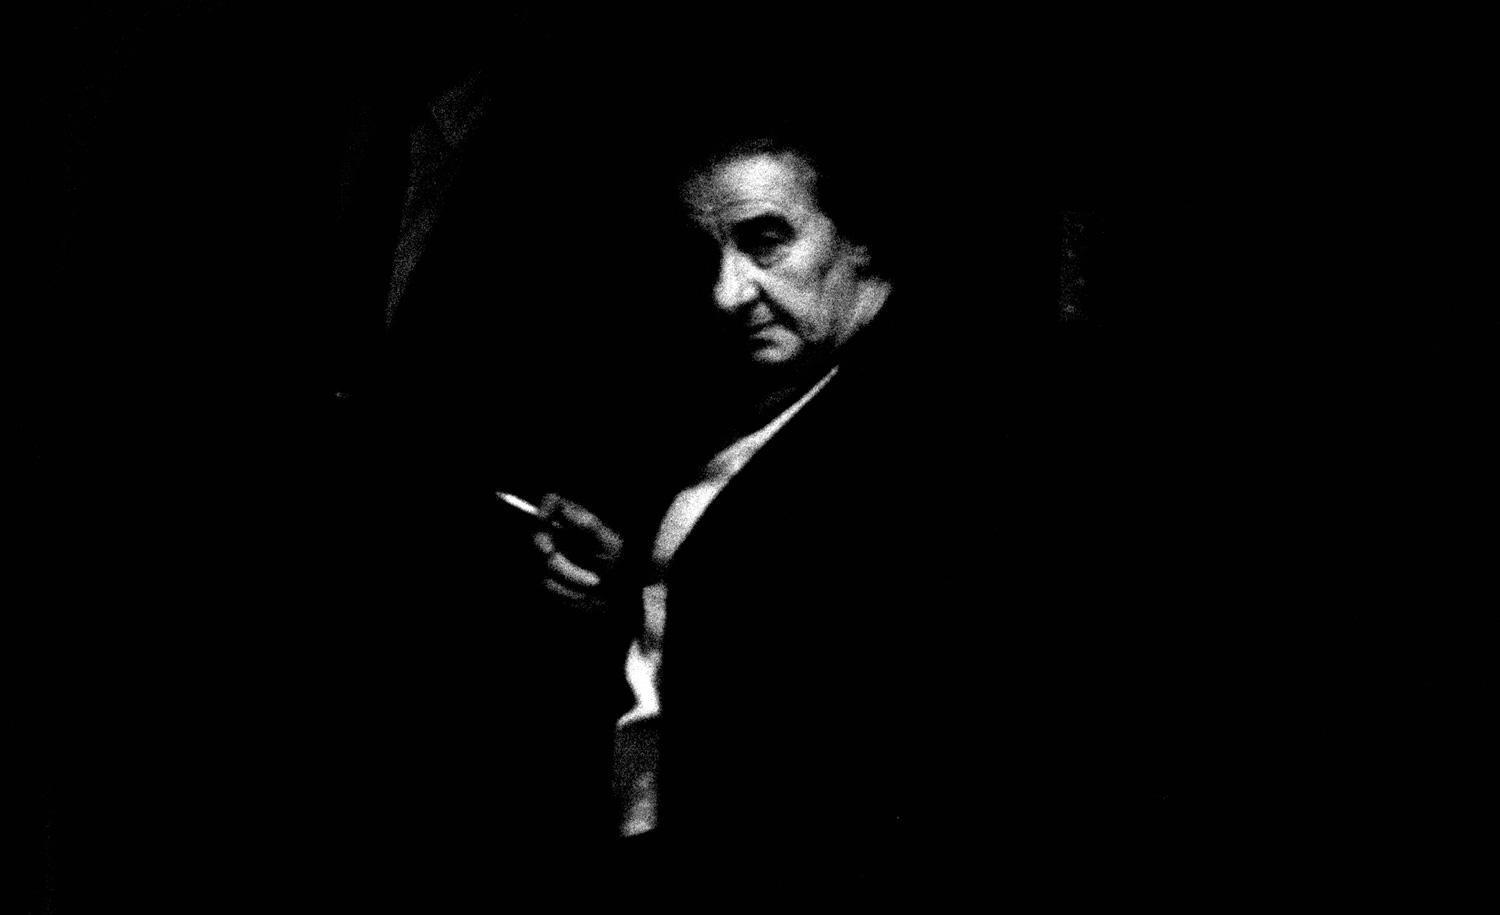 In the Knesset, when Golda Meir felt the need for a few puffs, she would leave the floor, go to the doorway, stand with one foot in and one foot out and listen to the debate while dragging on her cigarette. David Rubinger/CORBIS/Corbis via Getty Images.